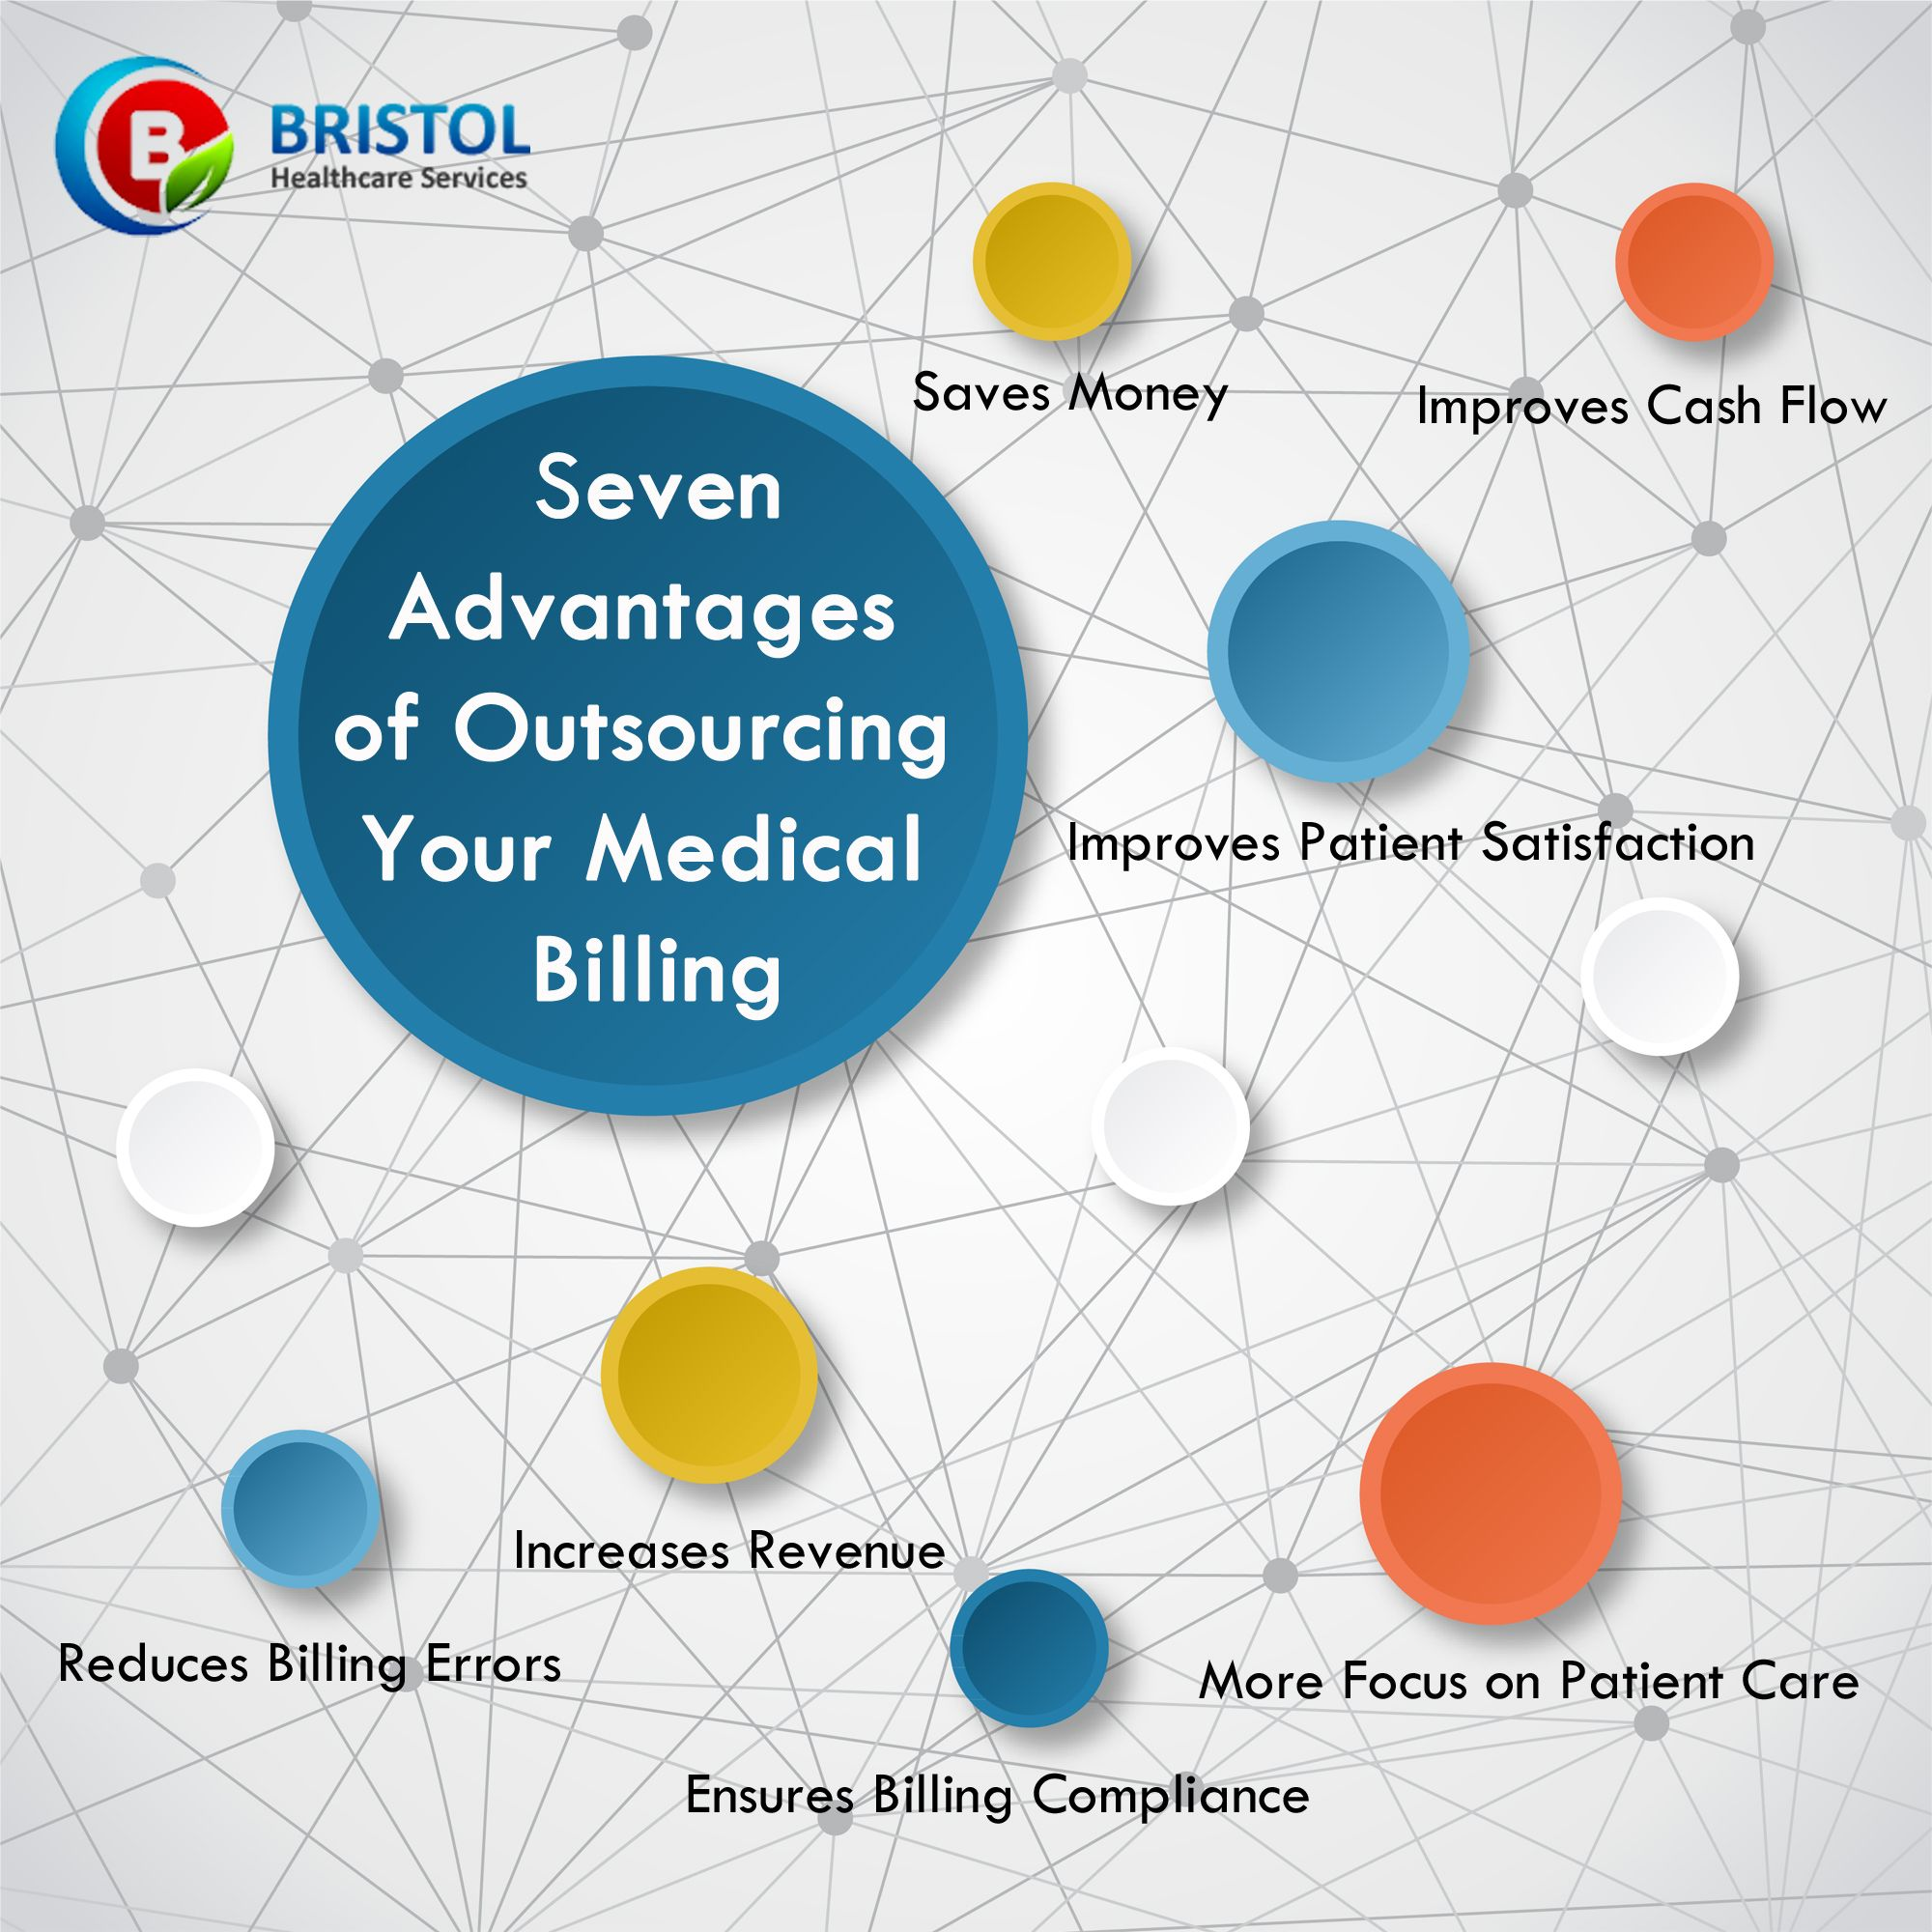 medium resolution of bristol healthcare services is a premier medical billing medical coding and revenue cycle management company we are a national service provider with